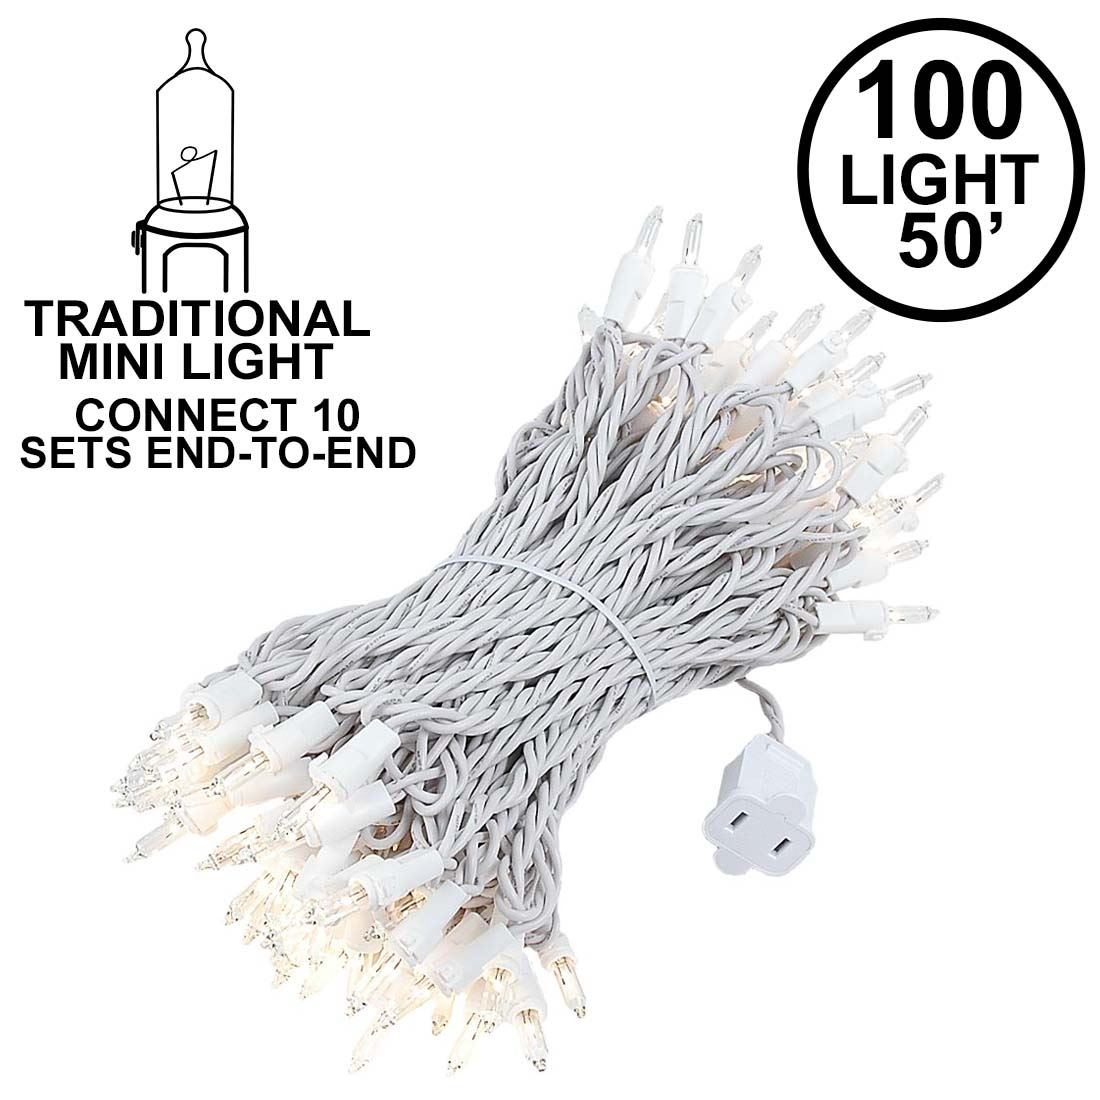 Picture of 100 Light 50' Long White Wire Christmas Mini Lights Connect 10